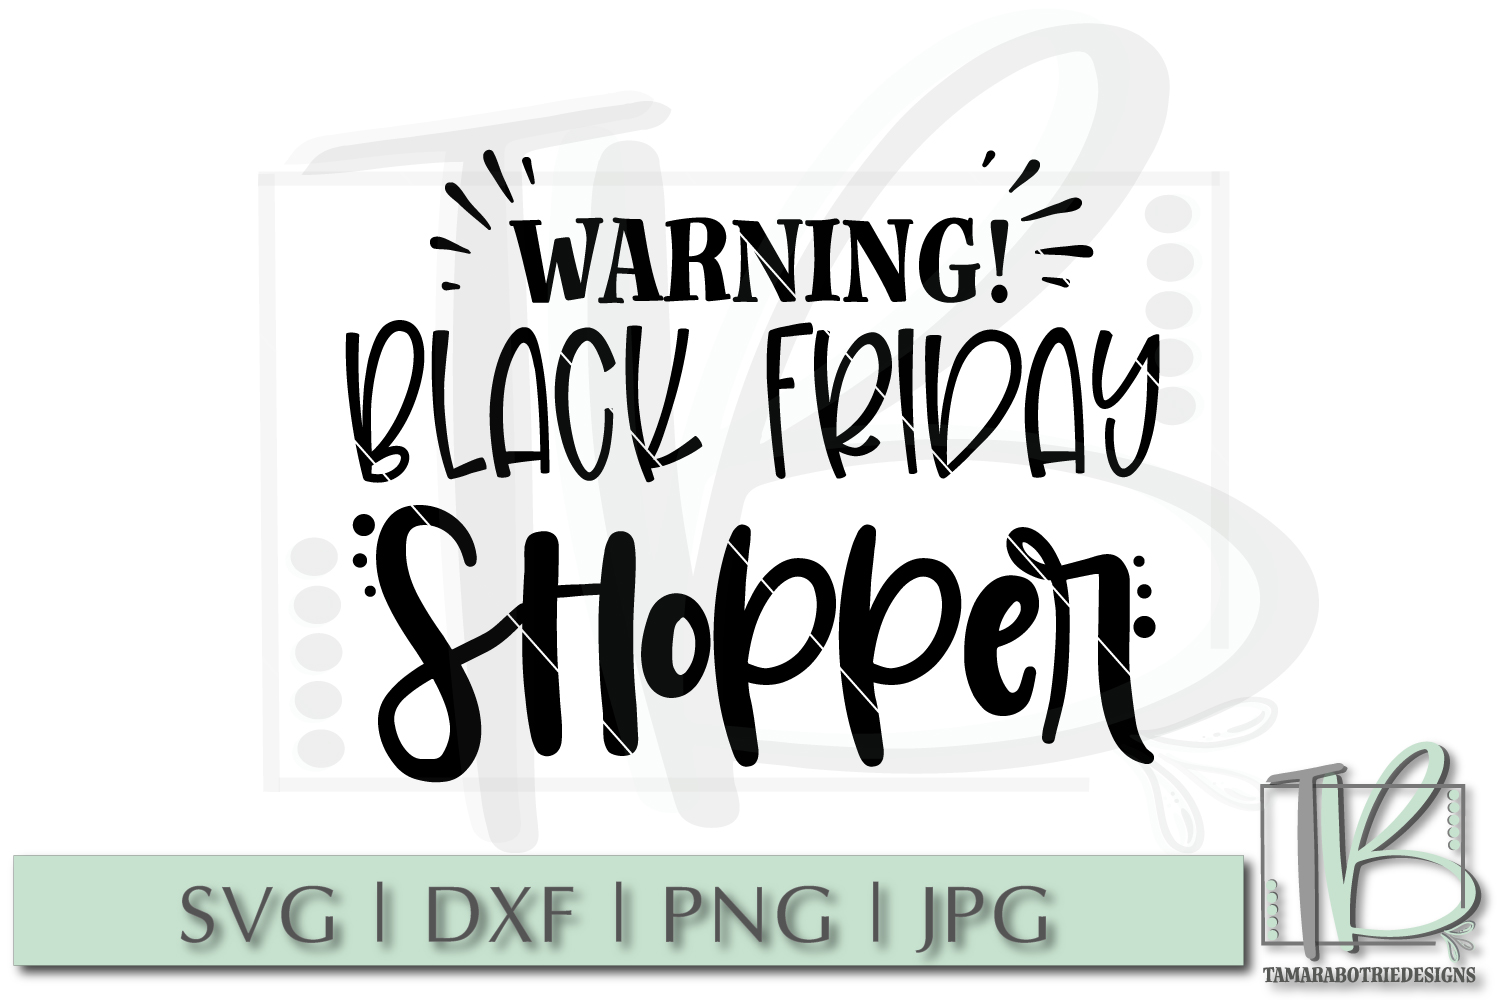 Black Friday SVG File, Warning Black Friday Shopper SVG example image 2